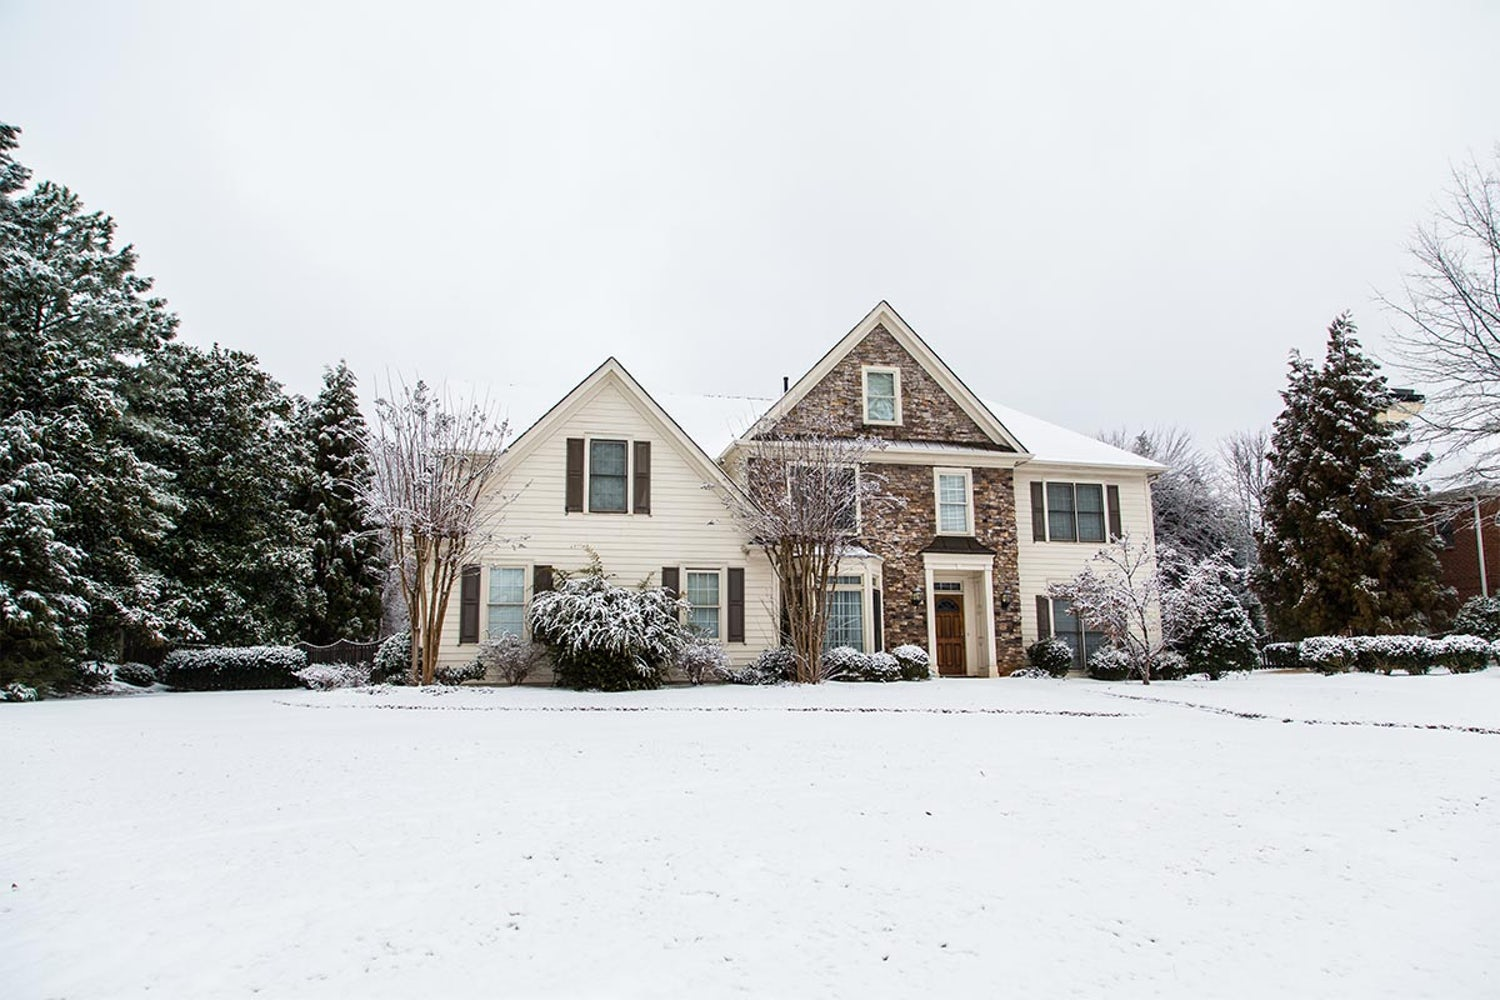 101 Guide to Winterizing Your Homes